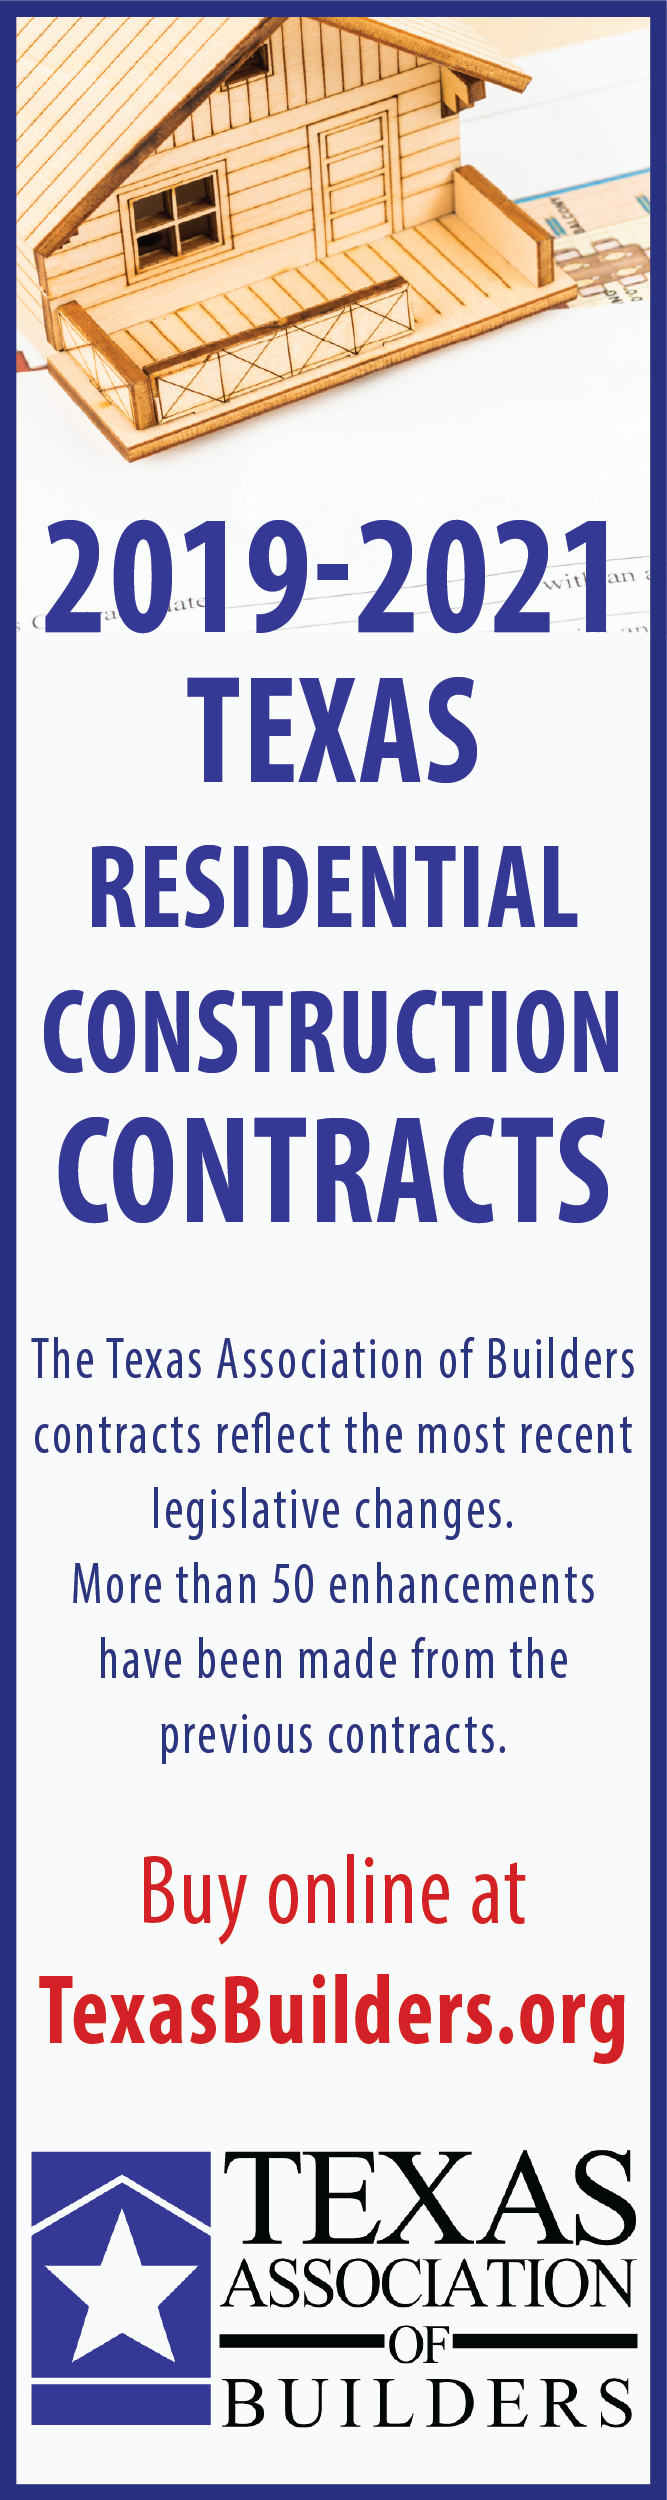 https://www.texasbuilders.org/membership/2019-2021-contracts-package.html